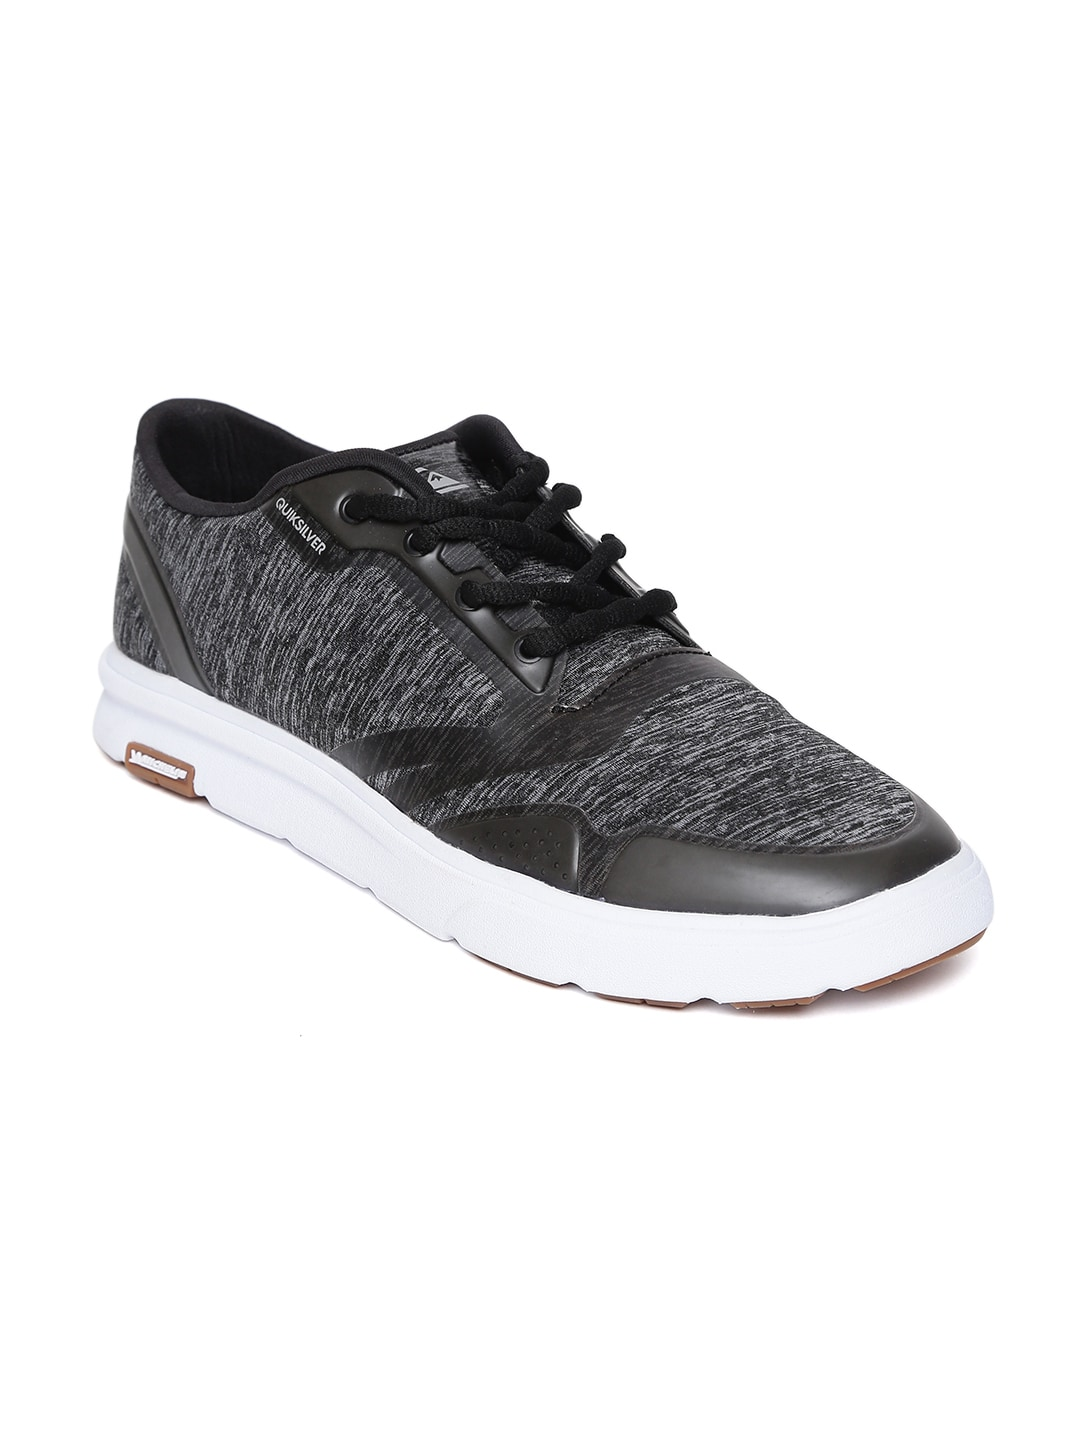 a0683e3eacb60 Shoes - Buy Shoes for Men